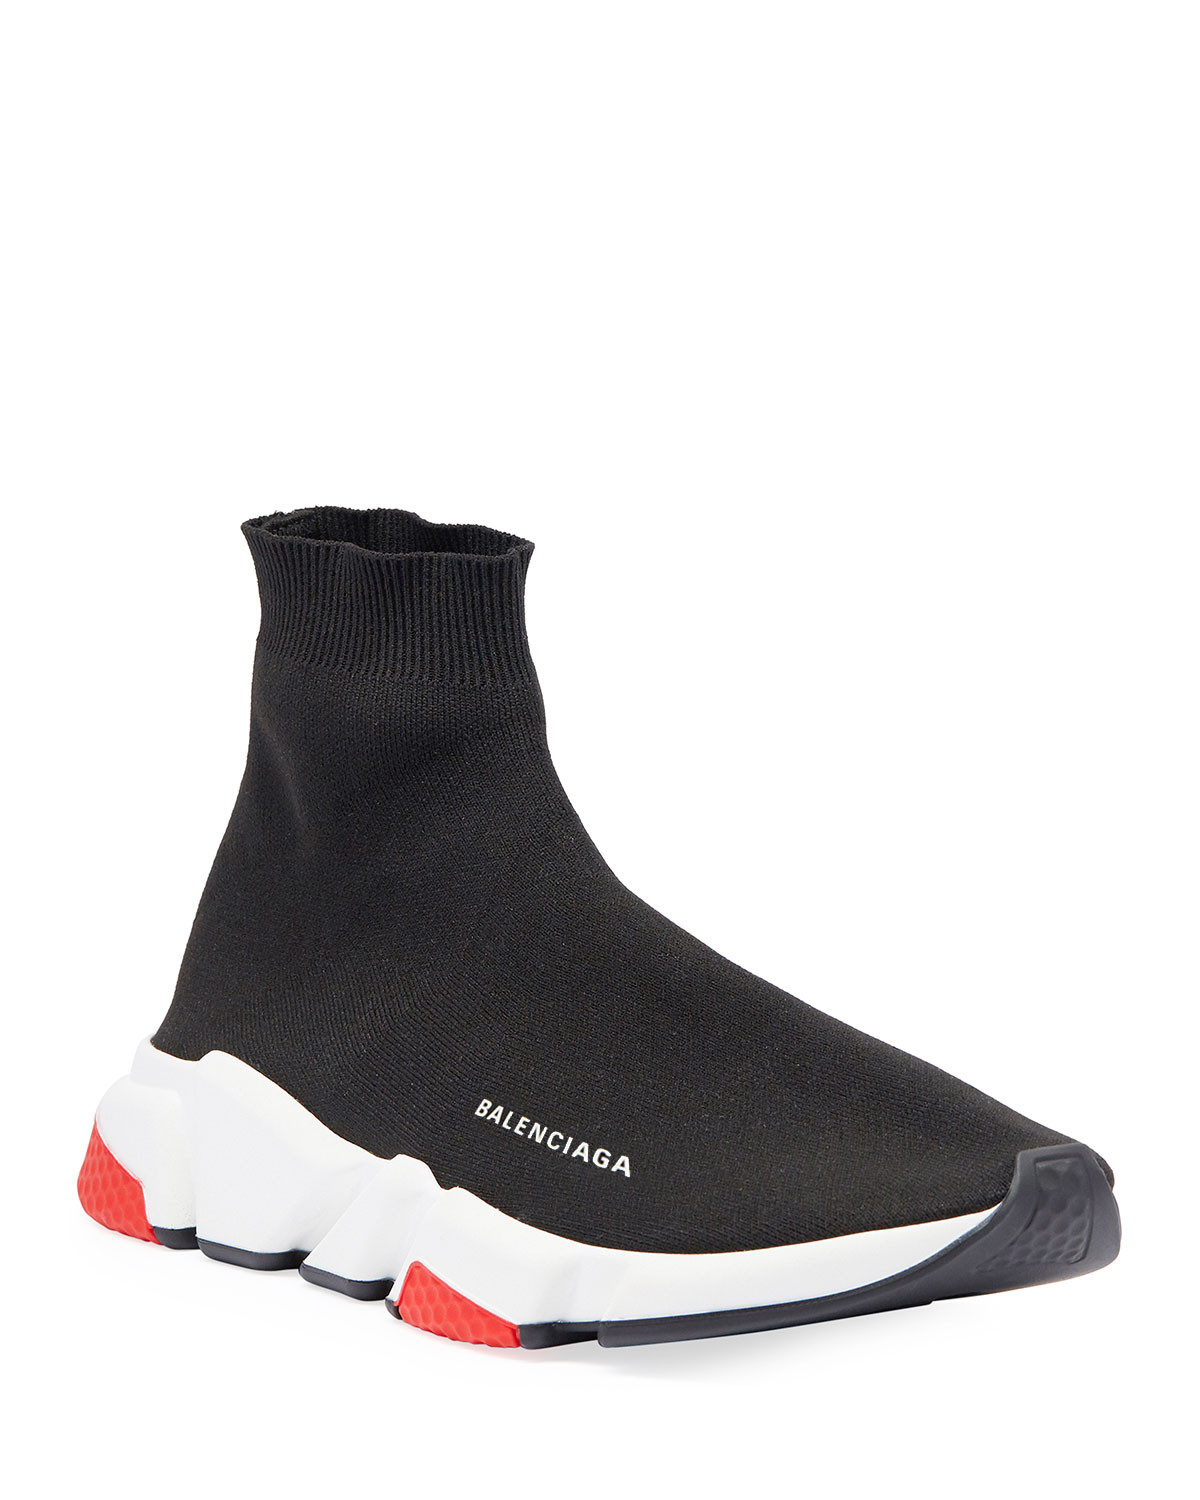 0dc4da9770d31 Balenciaga Men s Speed Mid-Top Trainer Sock Sneakers